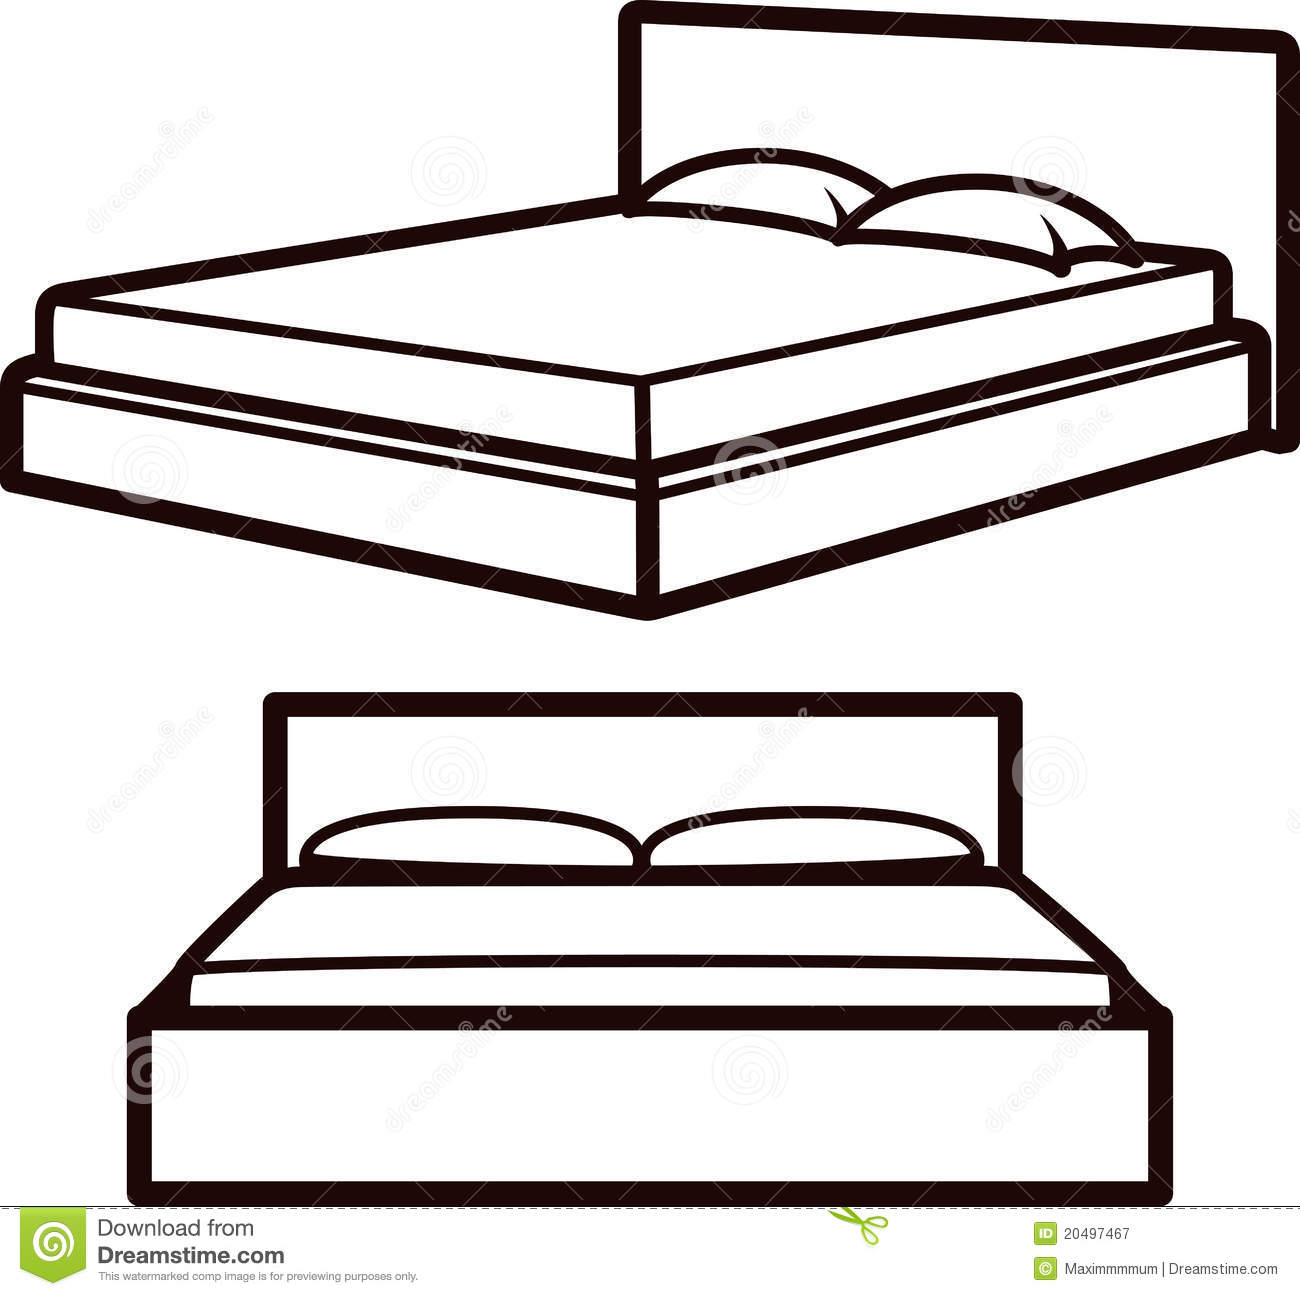 Royalty Free Stock Photography Simple Illustration Beds Image20497467 on Plan View Furniture Clip Art